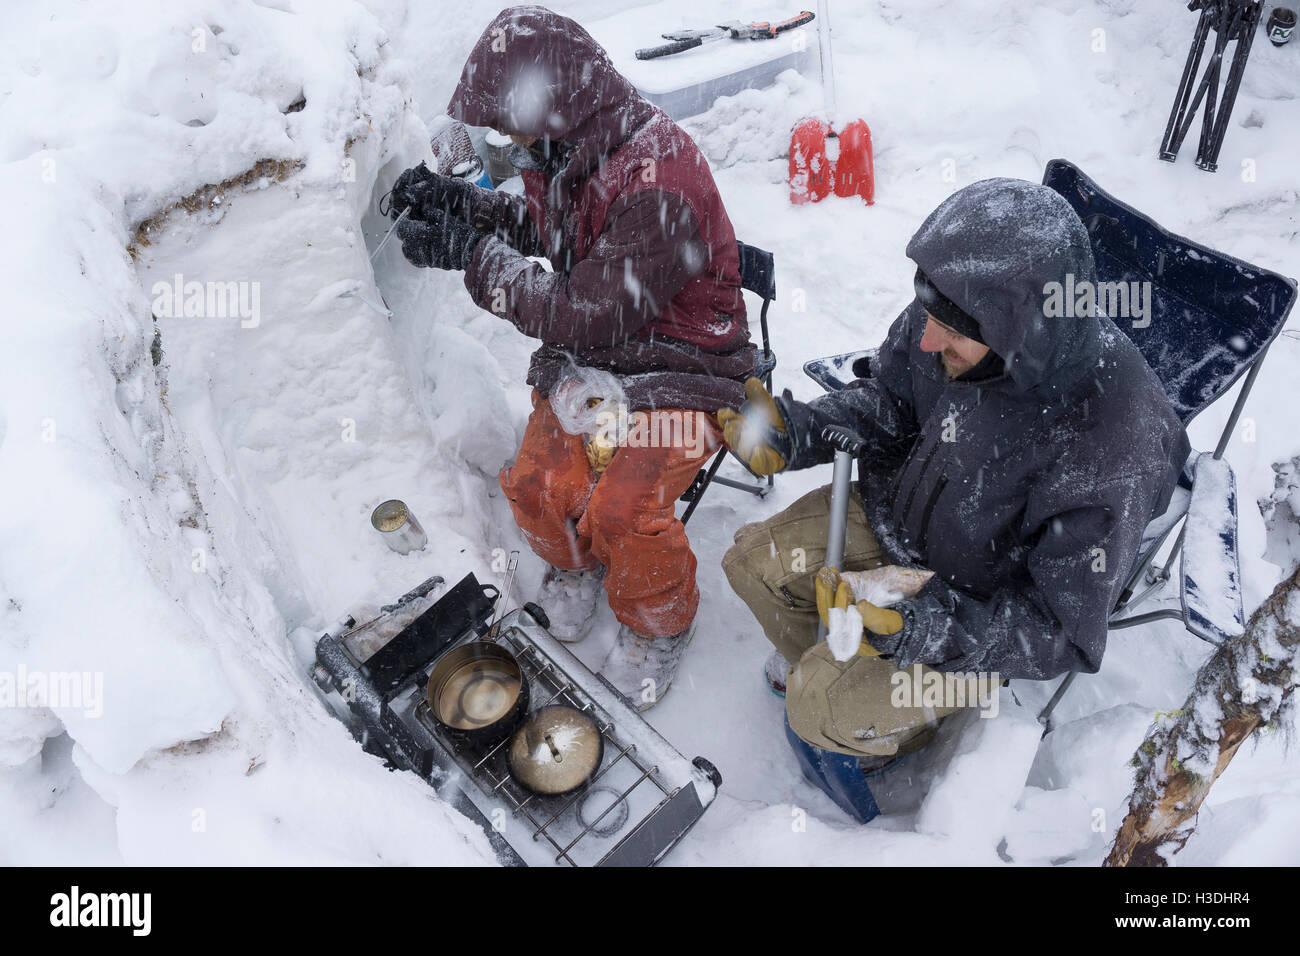 Cooking breakfast during a snow storm - Stock Image